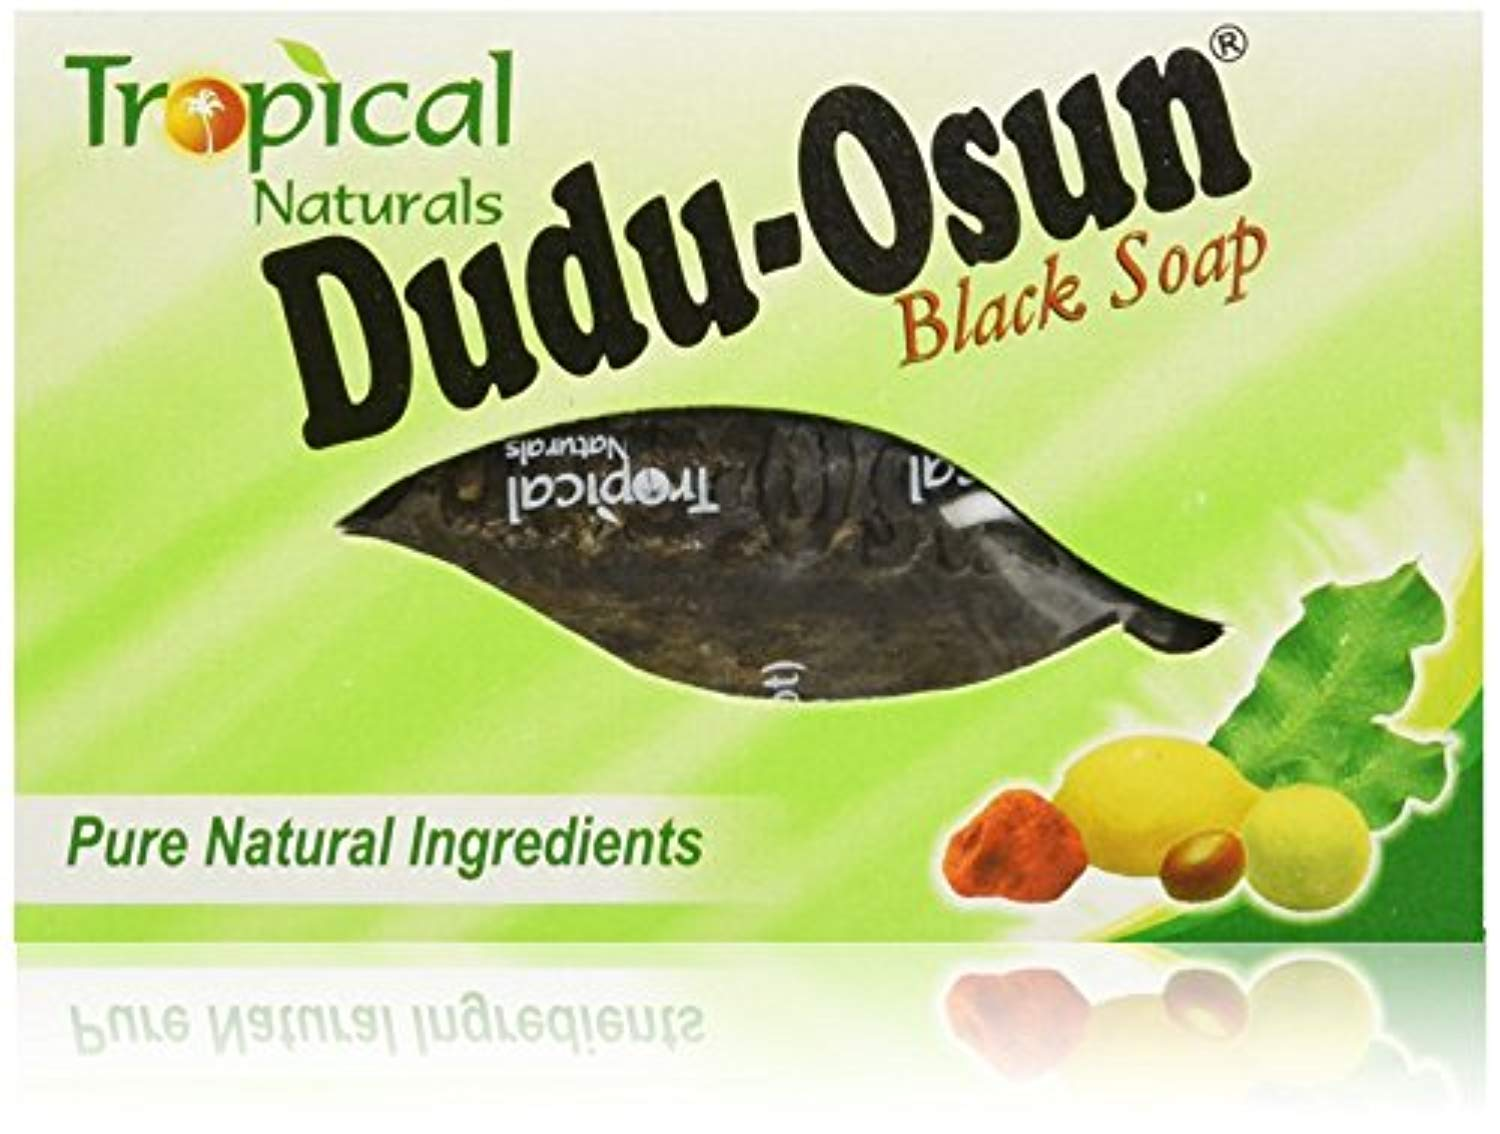 Black Soap 12 Bar Value Pack By Dudu Osun For African American Skin Care | African Black Soap Bars Made with Pure Natural Ingredients | Face and Body Wash for Cleansing, Nourishing,... - Ufumbuzi - Home